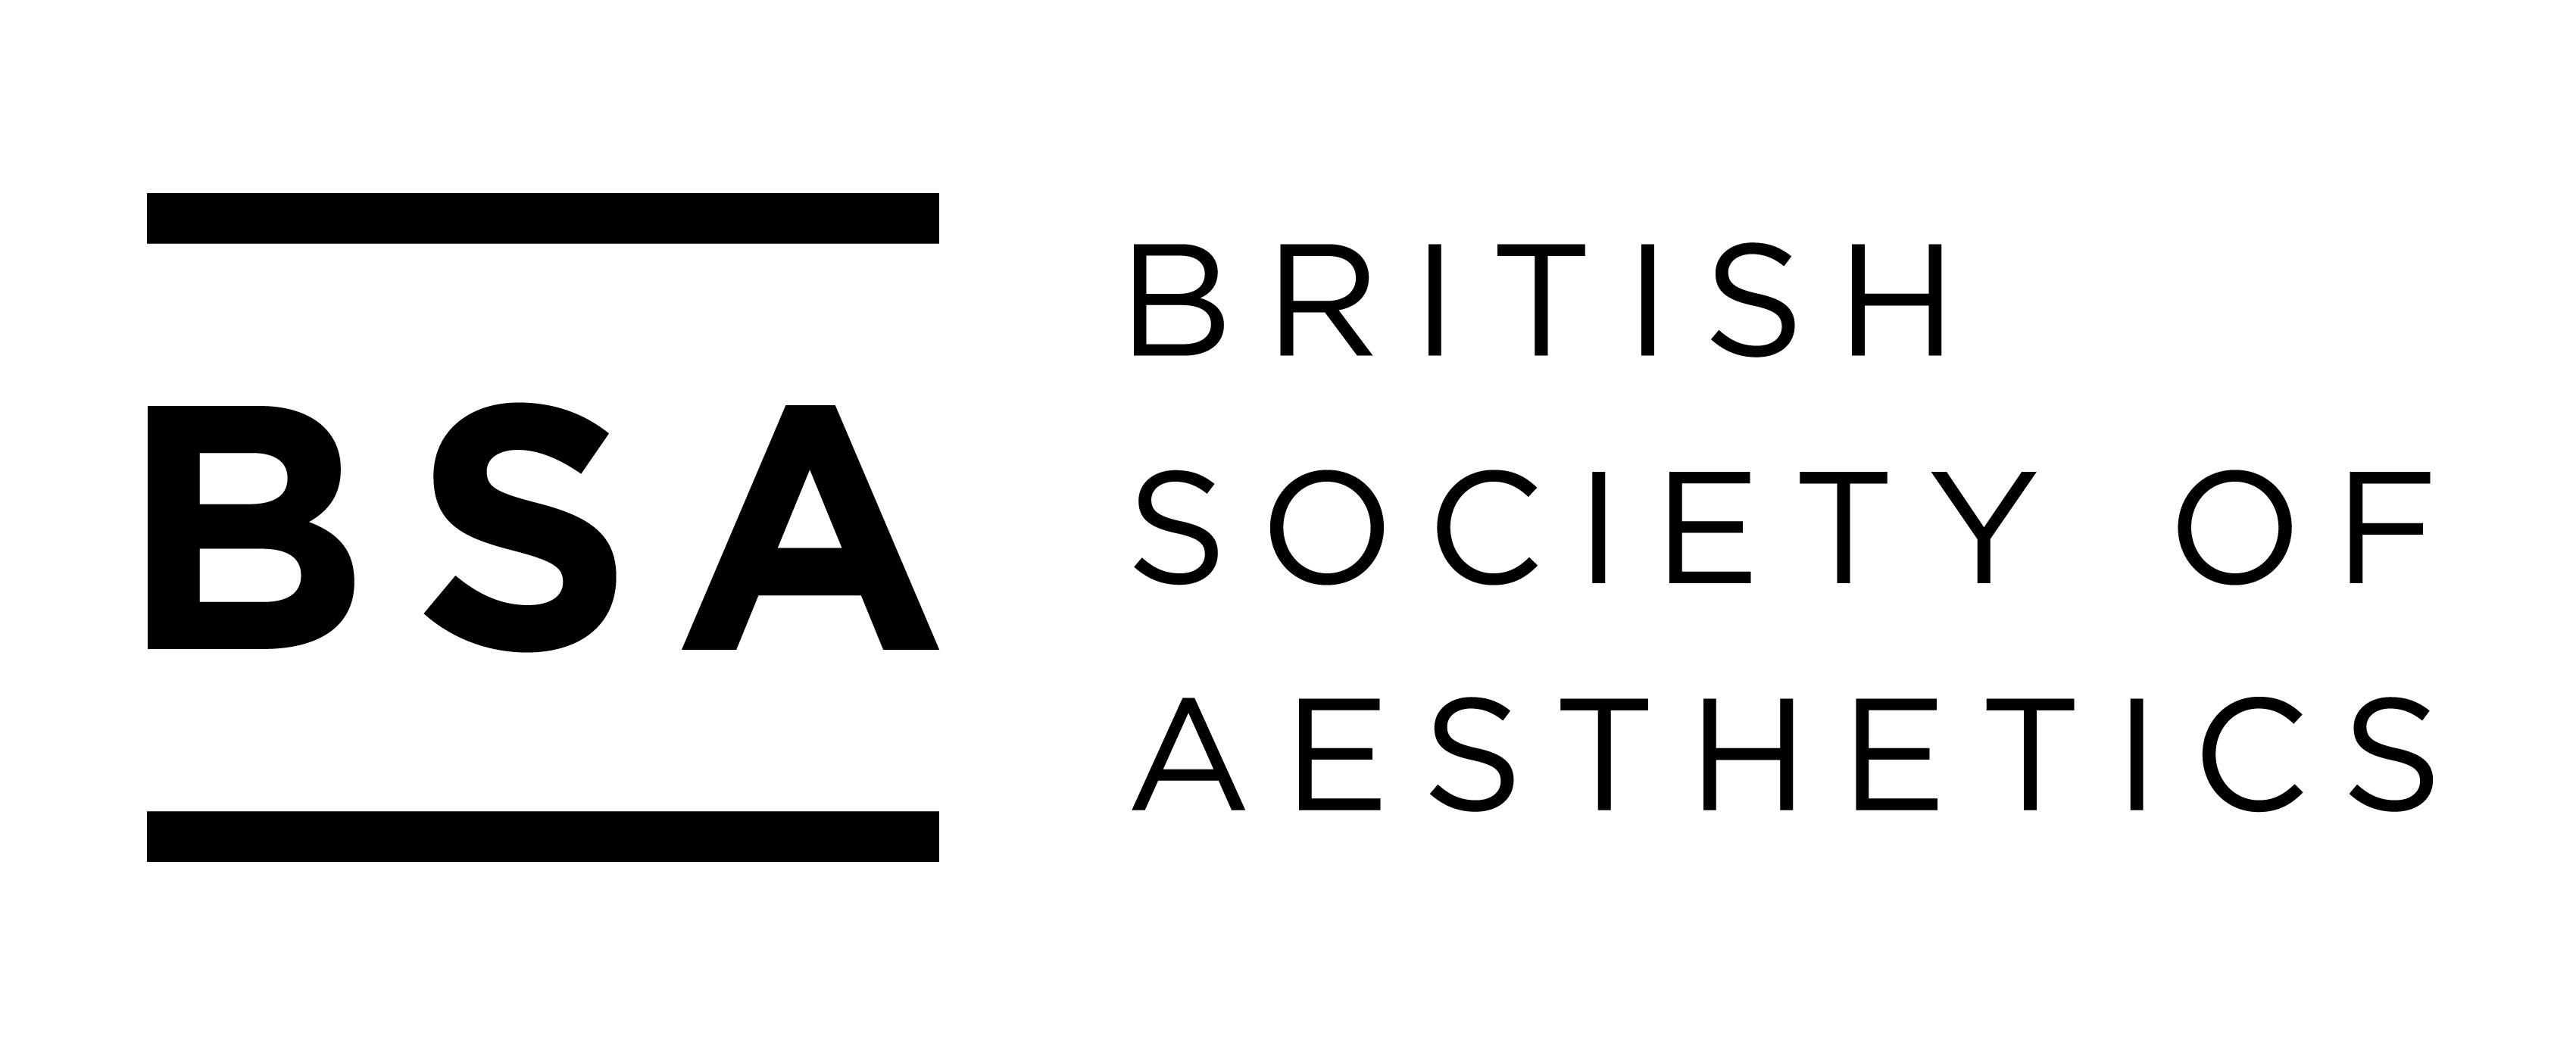 Aesthetic Emotions: A British Society of Aesthetics